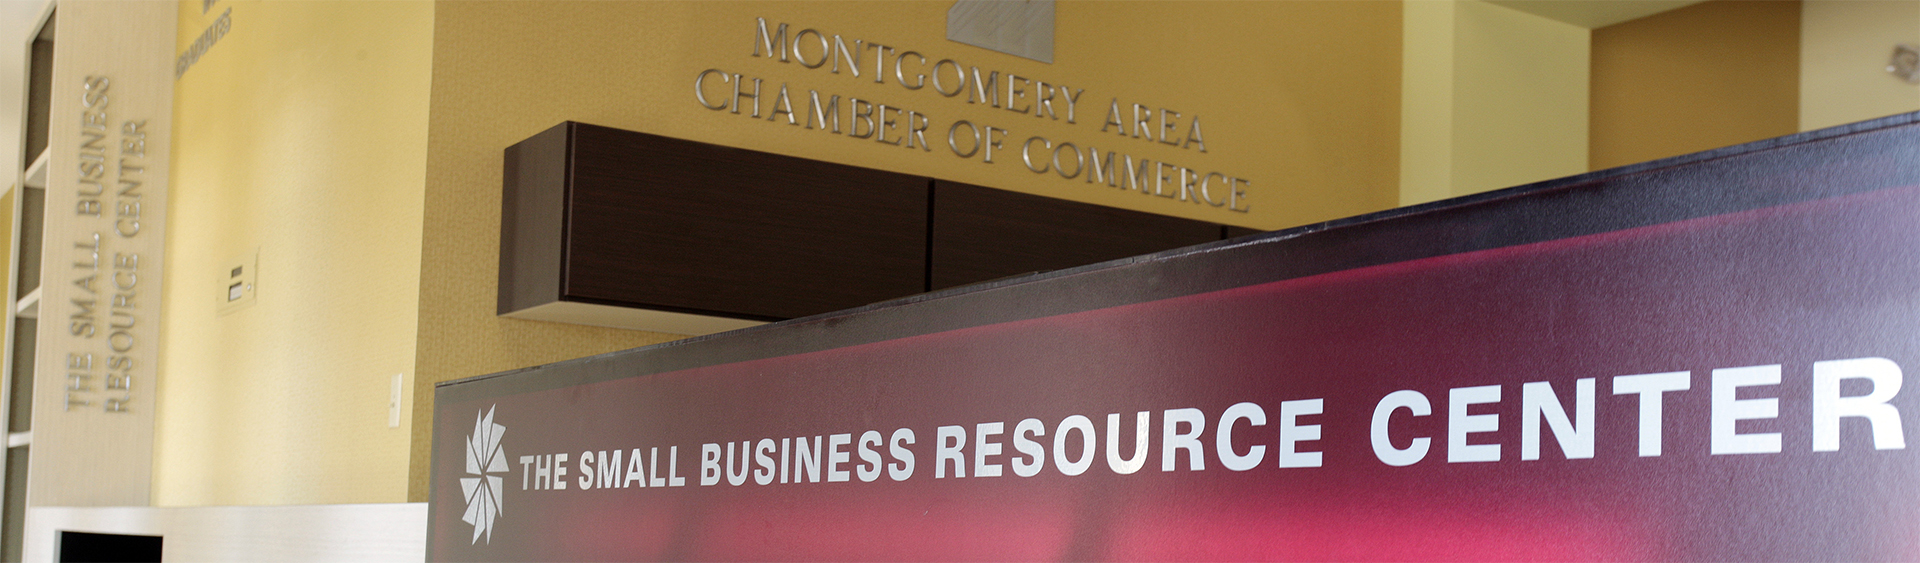 Small Business Resource Center, Montgomery Area Chamber of Commerce, Montgomery Chamber, MGMChamber, Montgomery Alabama